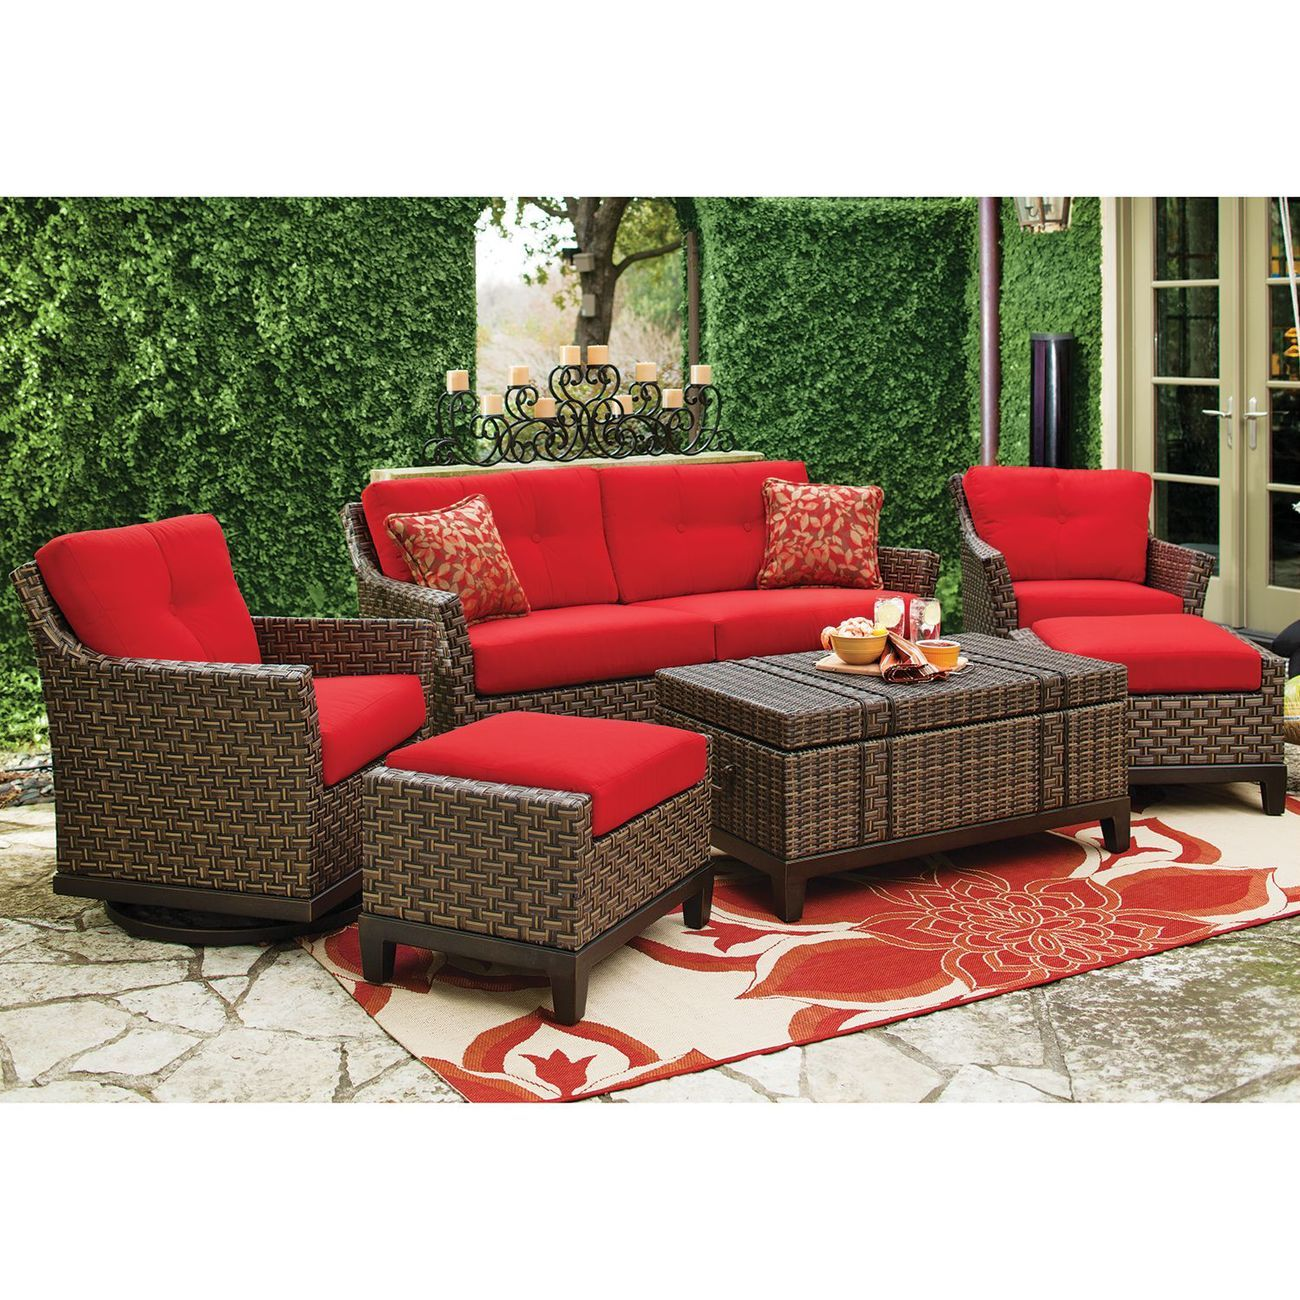 Loveseat Two 360 Swivel Glider Chairs With Ottomans 4